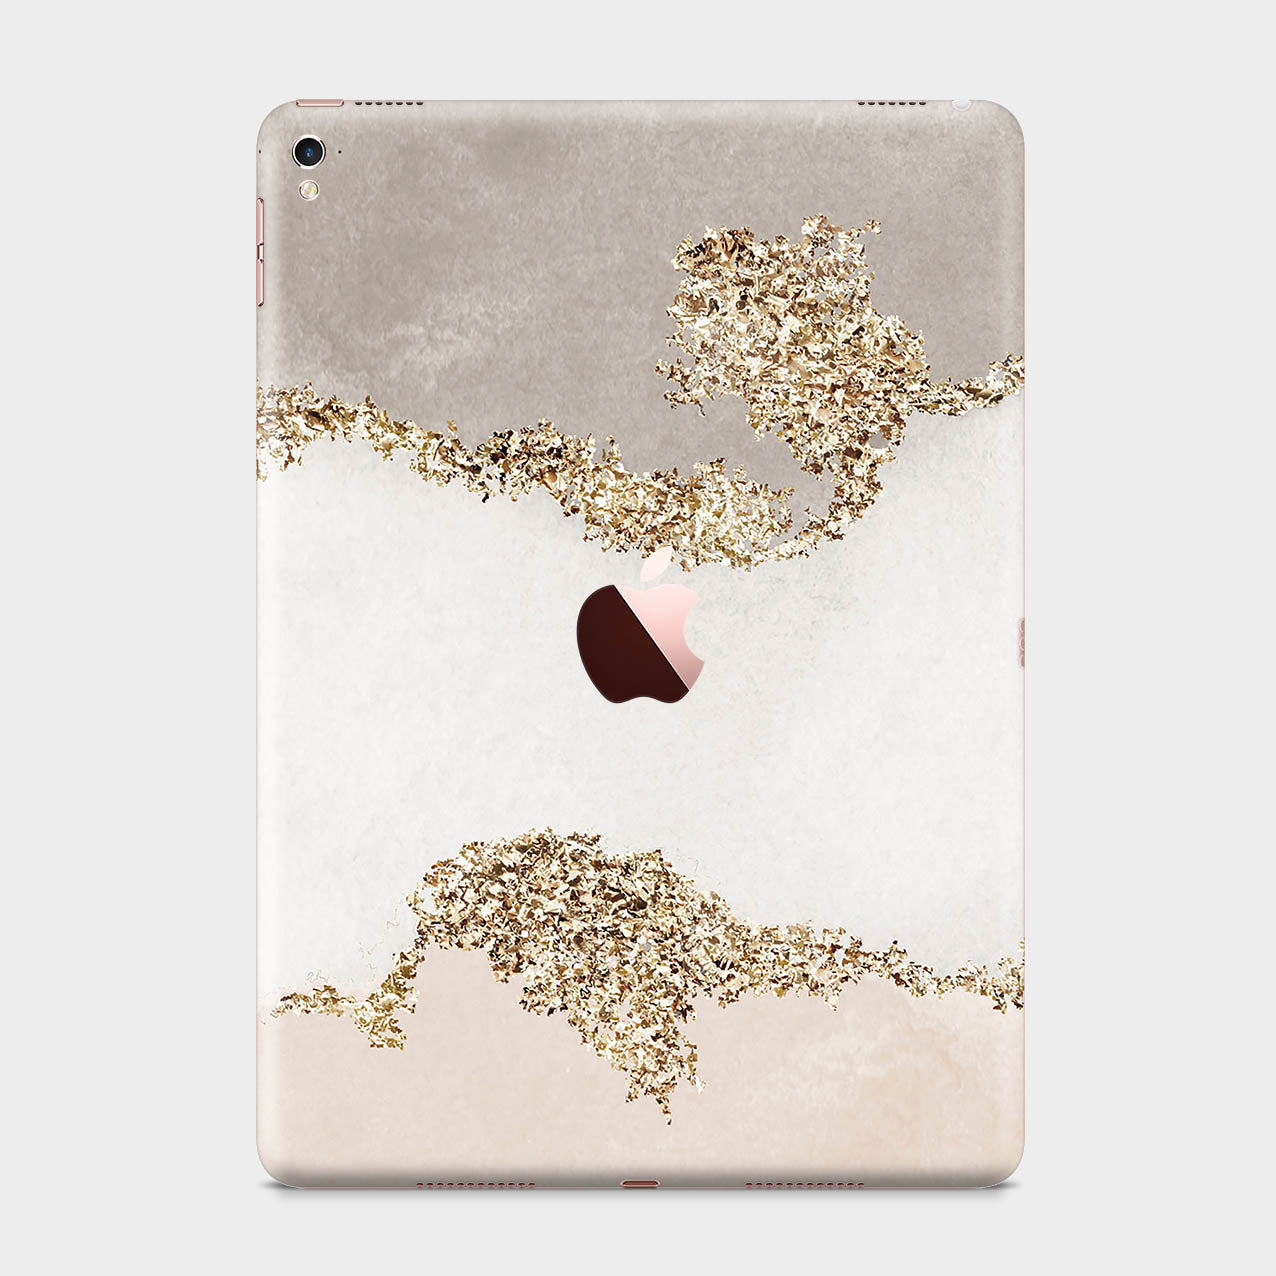 GOLDEN COAST iPad Mini skins | Pigtou